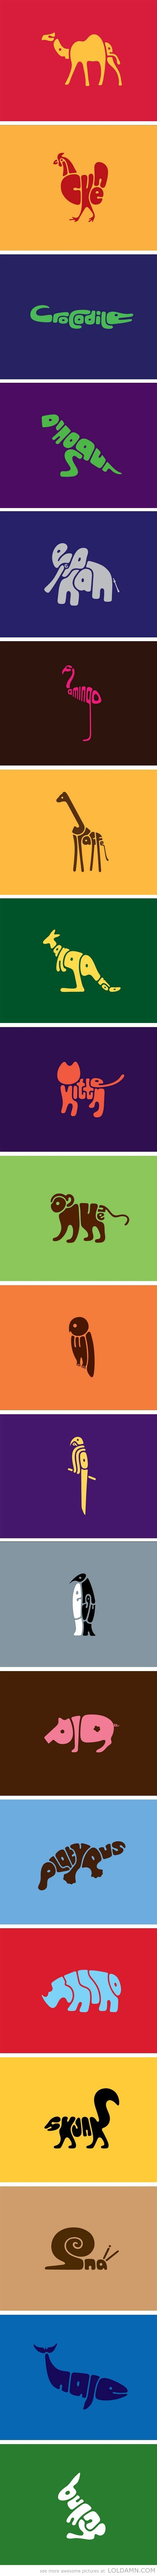 Word Animals- Designer: Dan dan@wordanimals.co.uk I could totally see these…